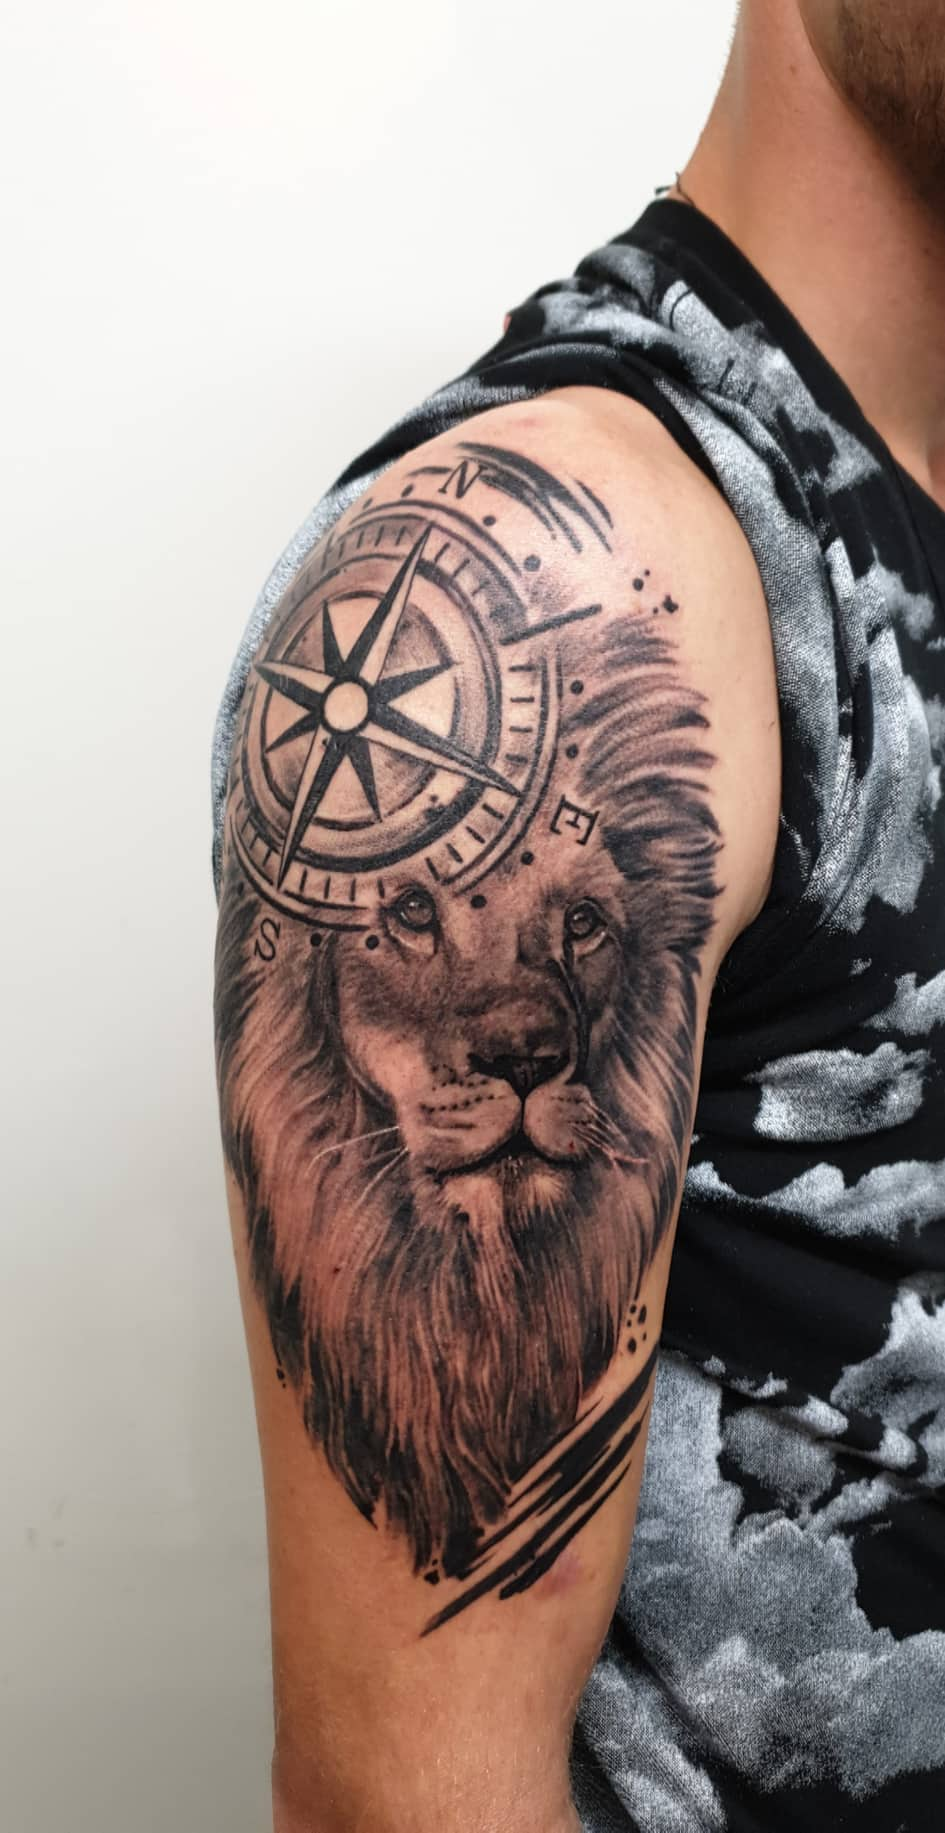 black-and-grey-lion-photo-realism-realistic-compass-graphic-sketchy-trash-polka-black-work-shoulder-upper-arm-otautahi-auckland-cristiana-bugatti.jpg